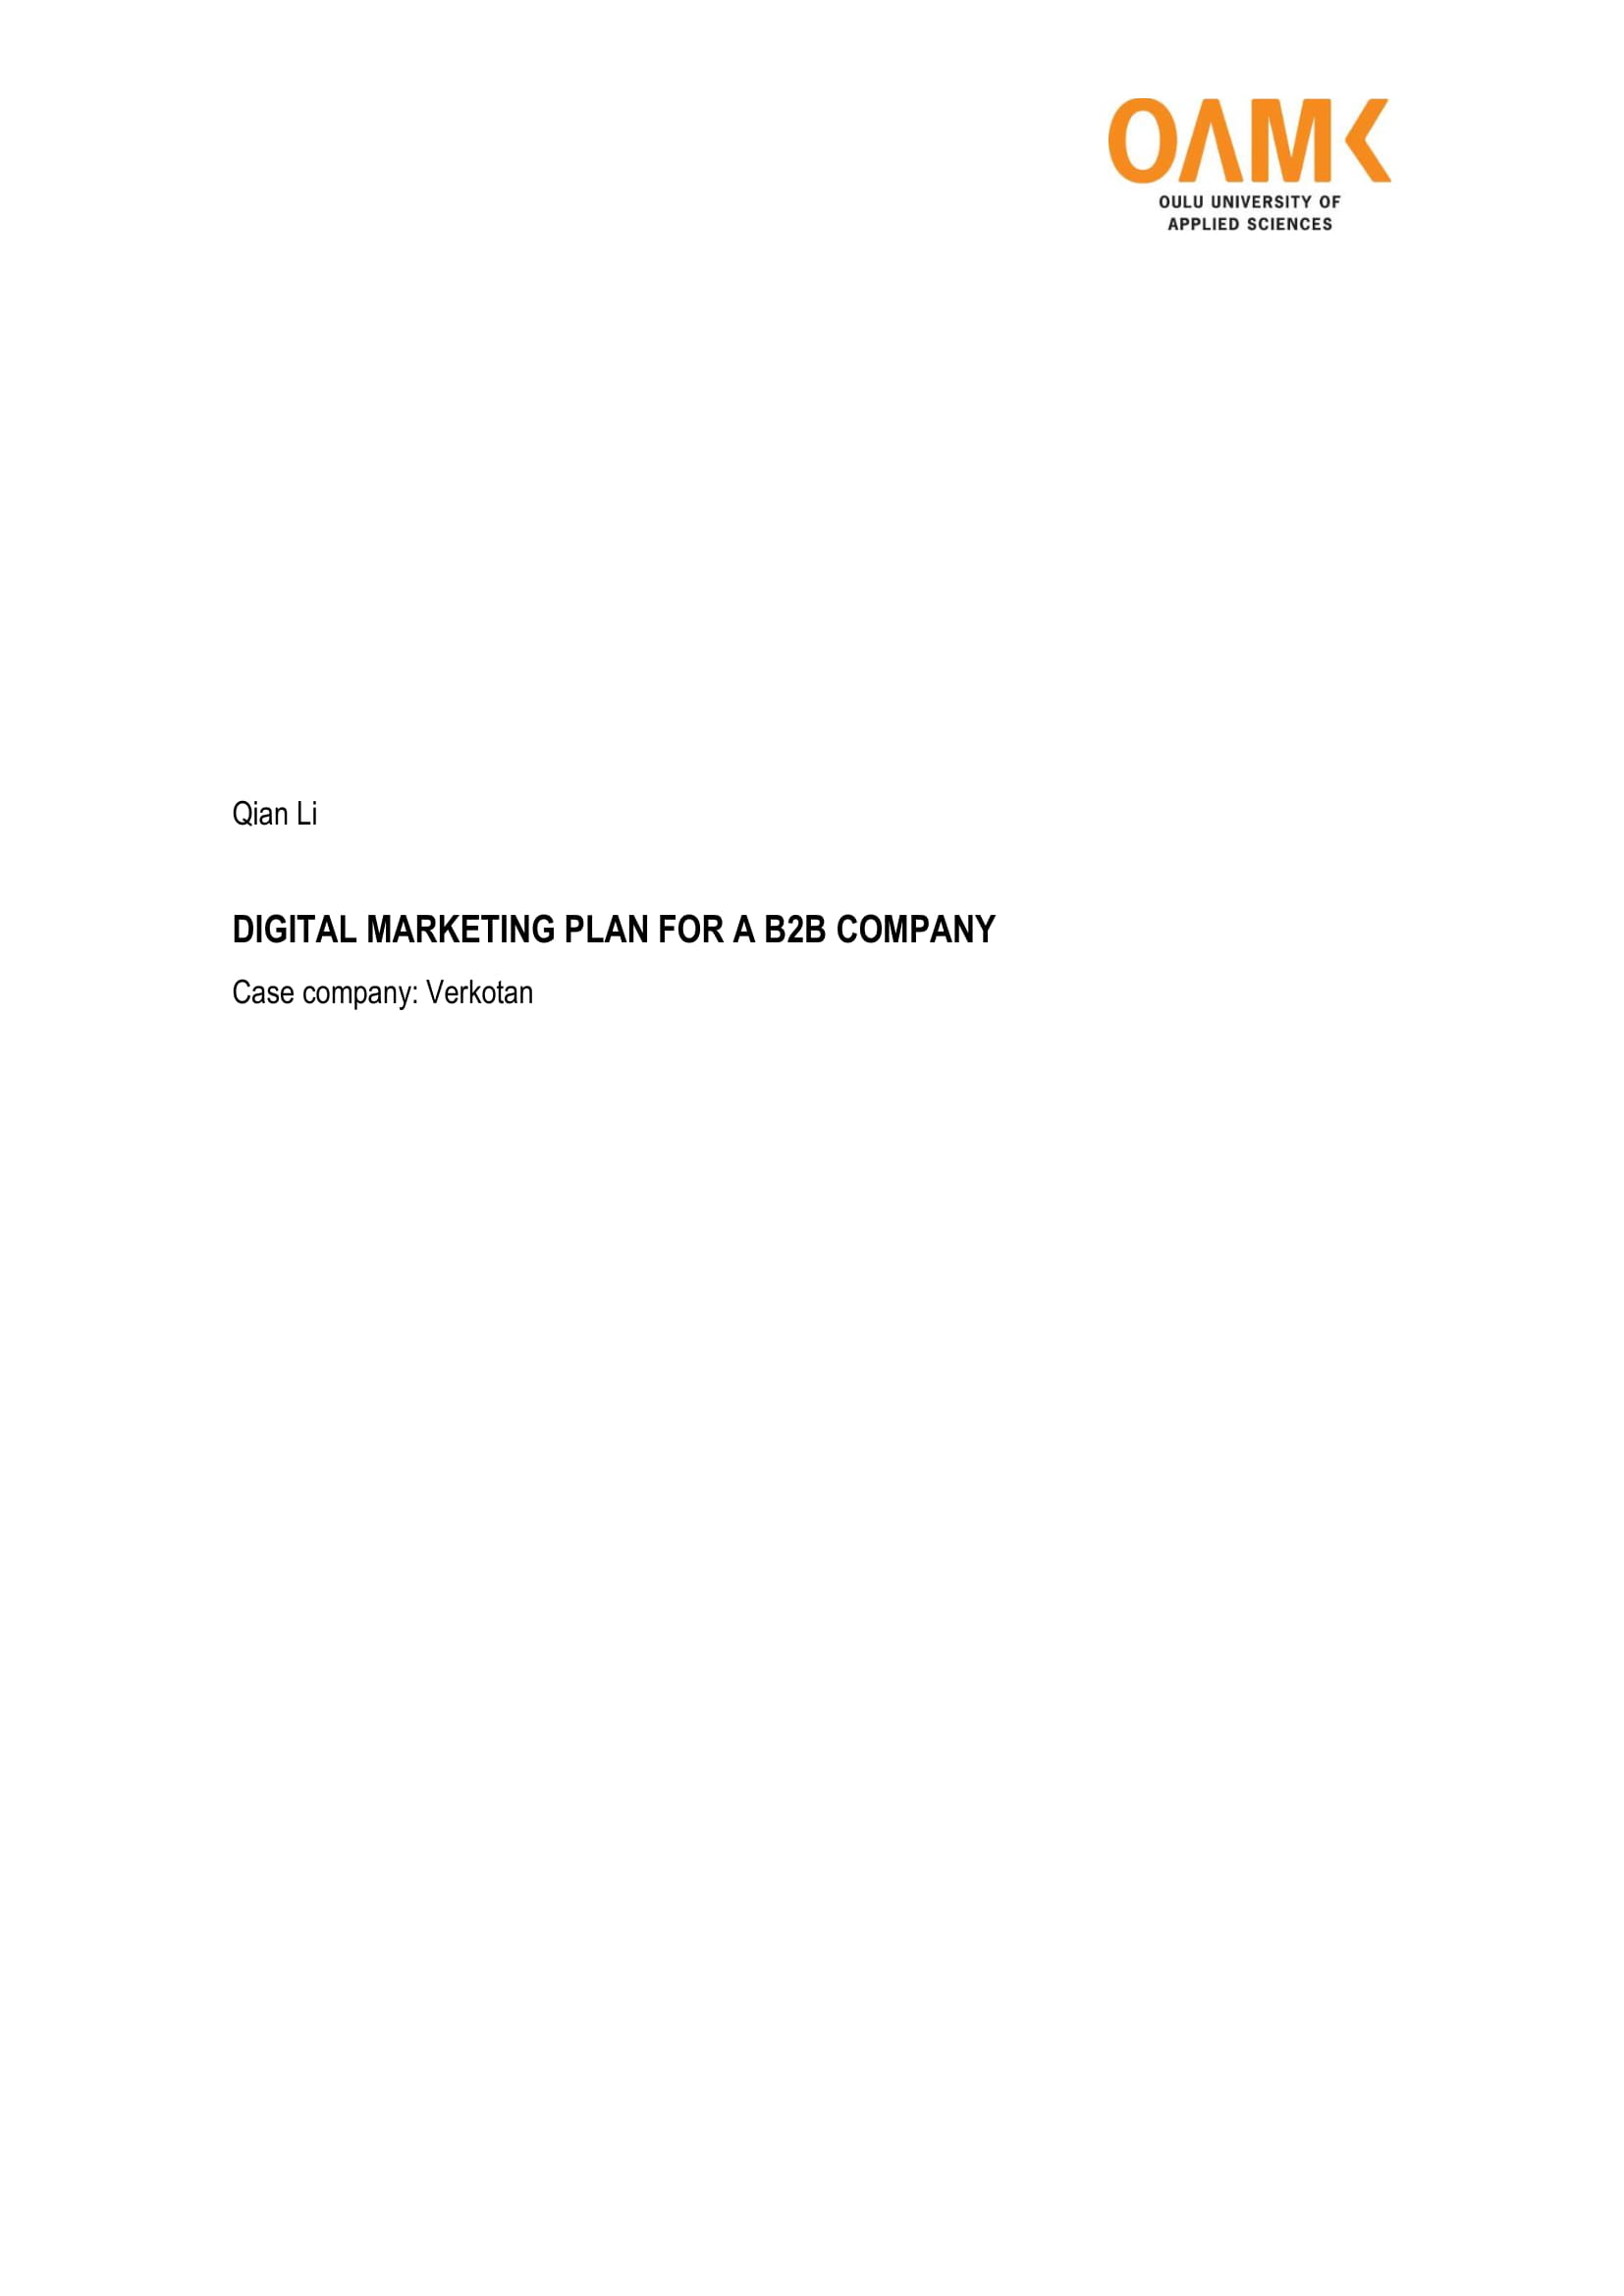 b2b digital marketing plan example